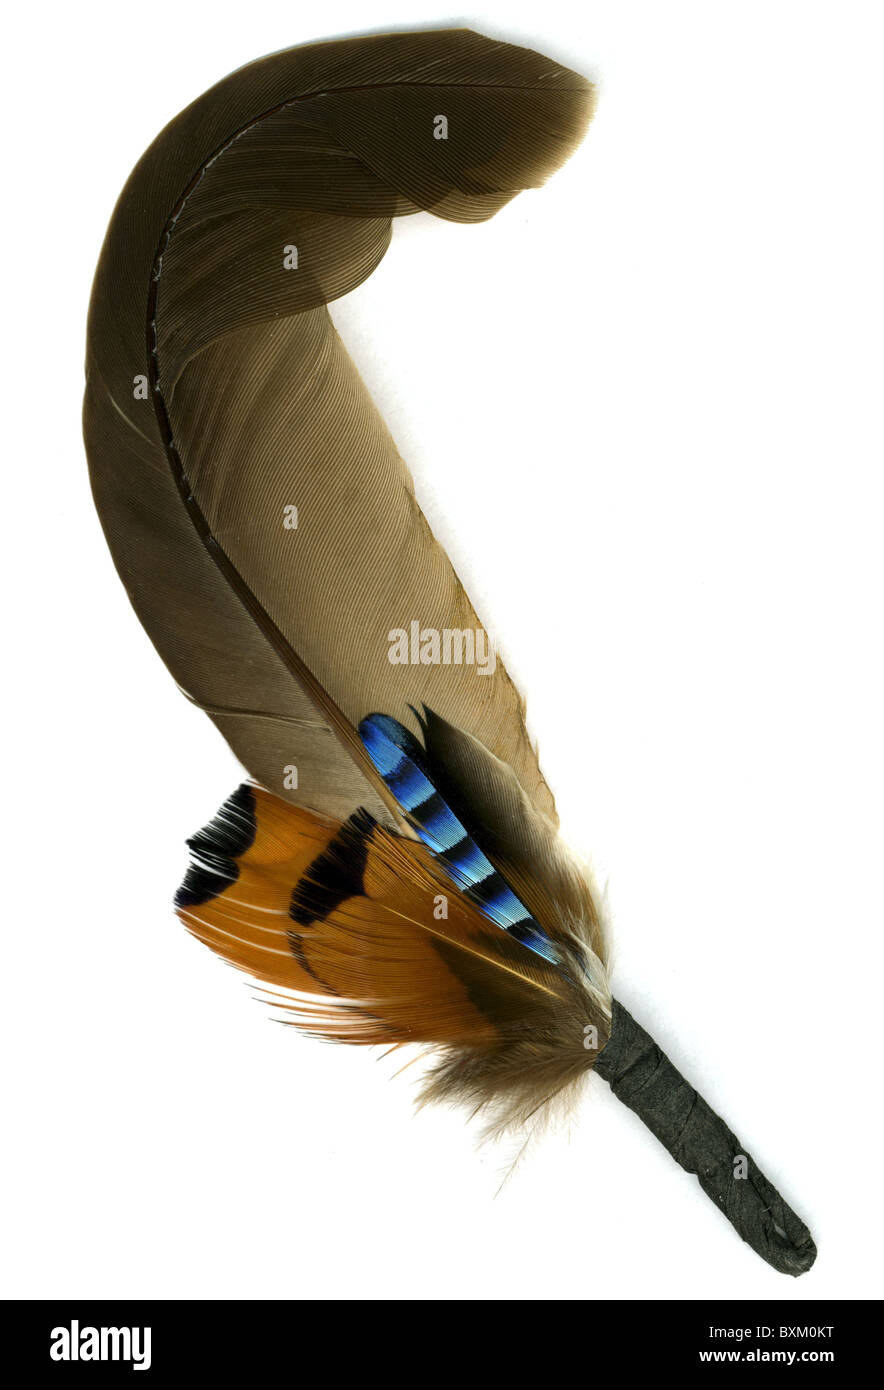 fashion, accessoires, plume, 1940s, 40s, 20th century, historic, historical, hat feather, feathers, bird's, - Stock Image